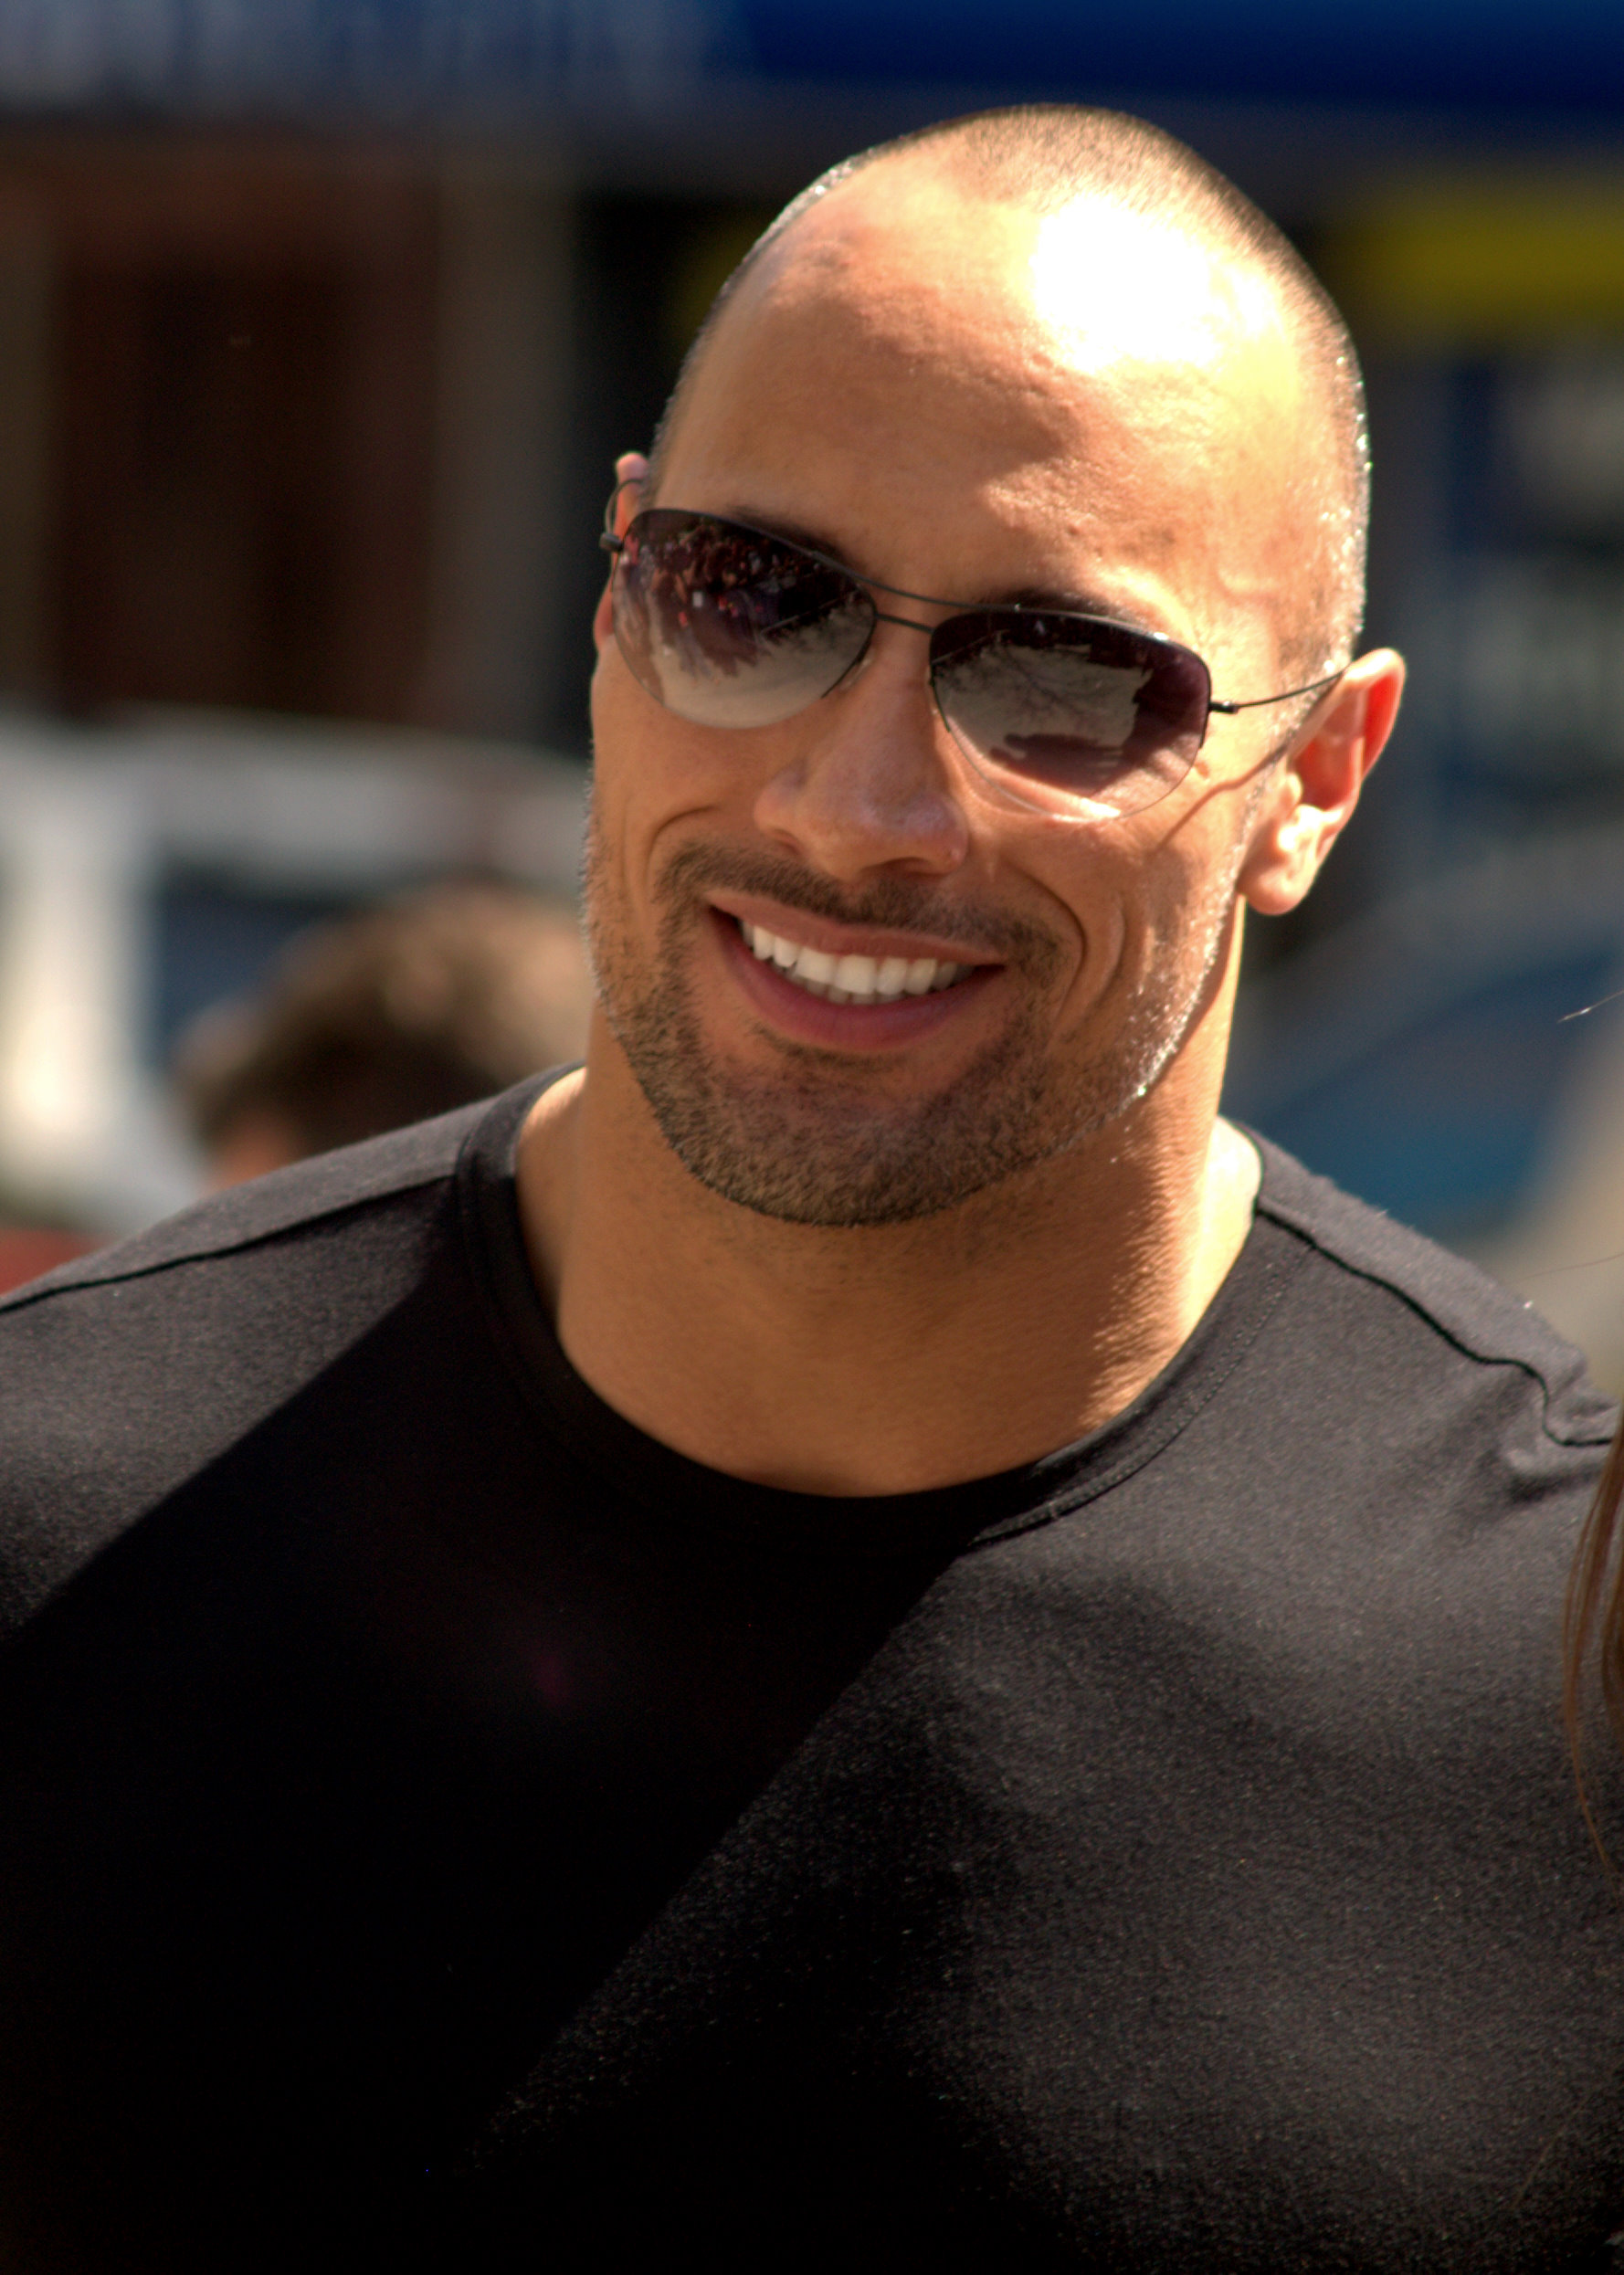 Dwayne The Rock Johnson Makes His Rapping Debut.. Check It Out HERE!